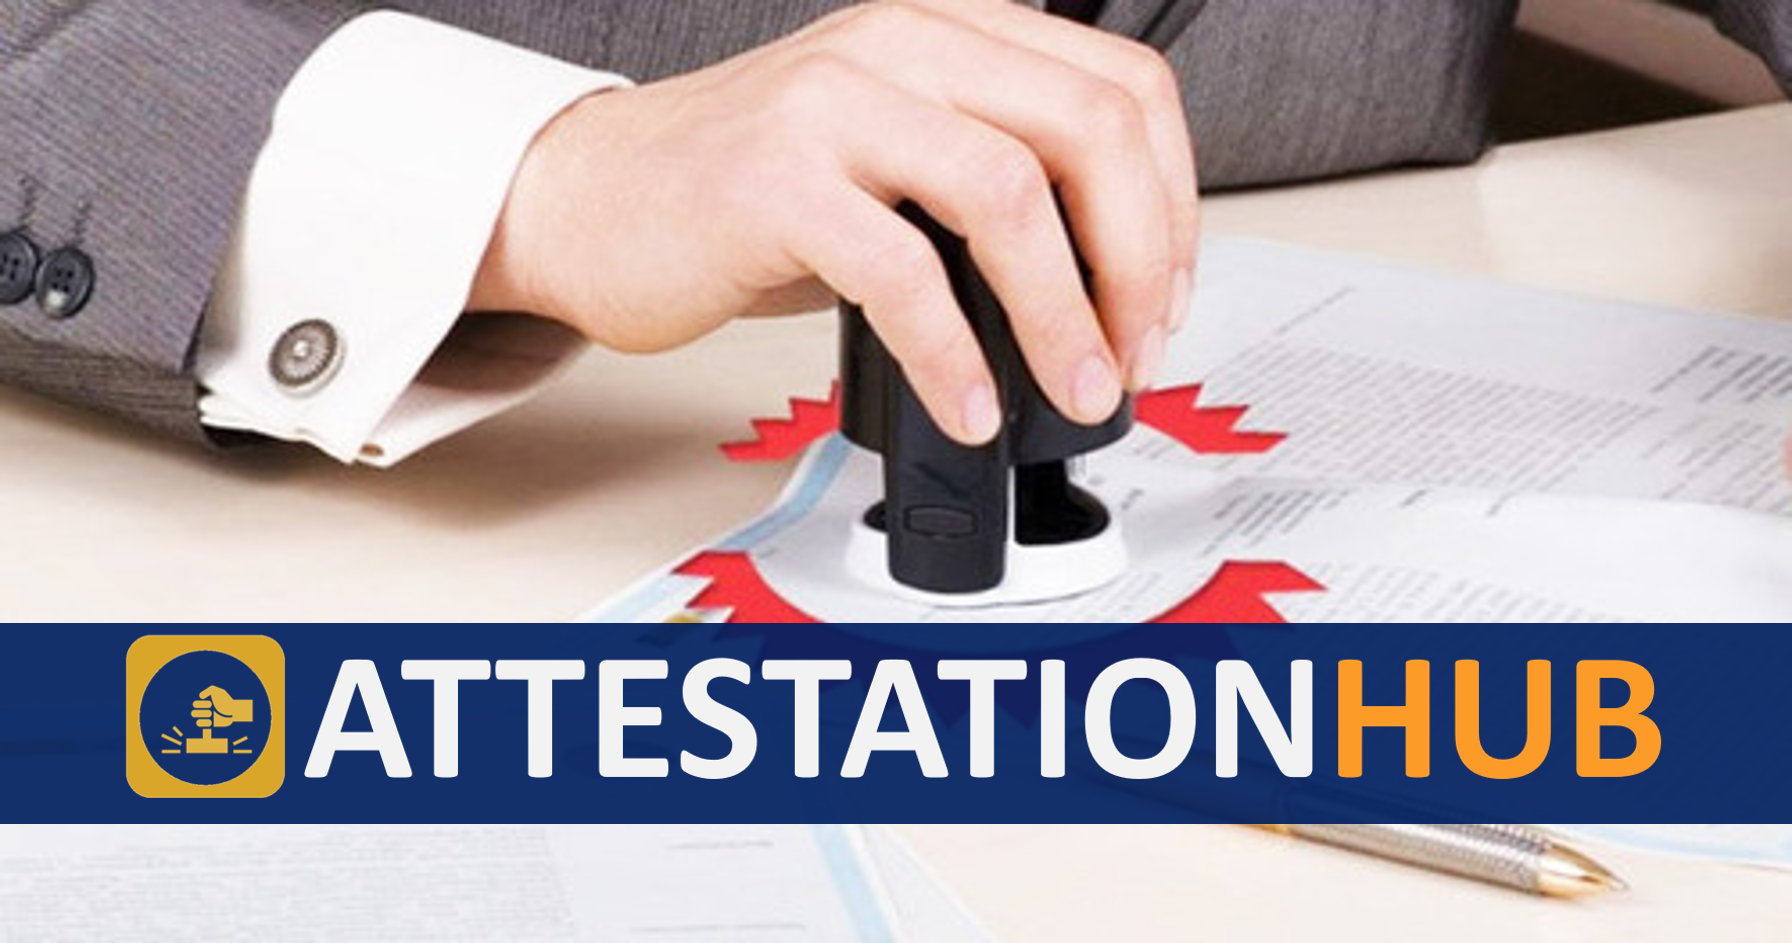 Attestation Hub - Hub of All Attestation services 2